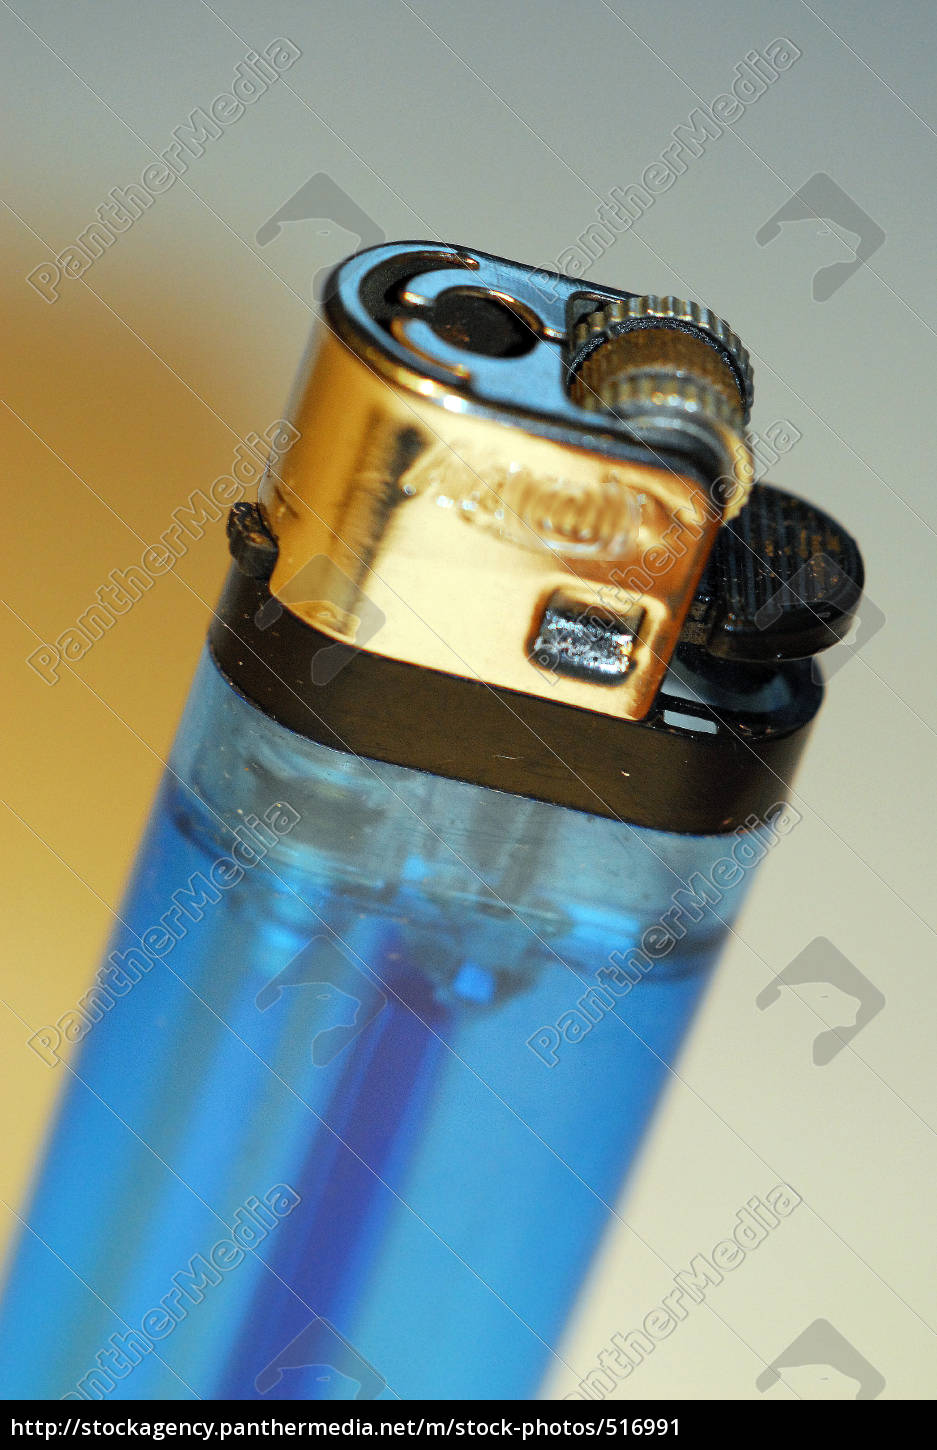 lighter, blue, 2 - 516991